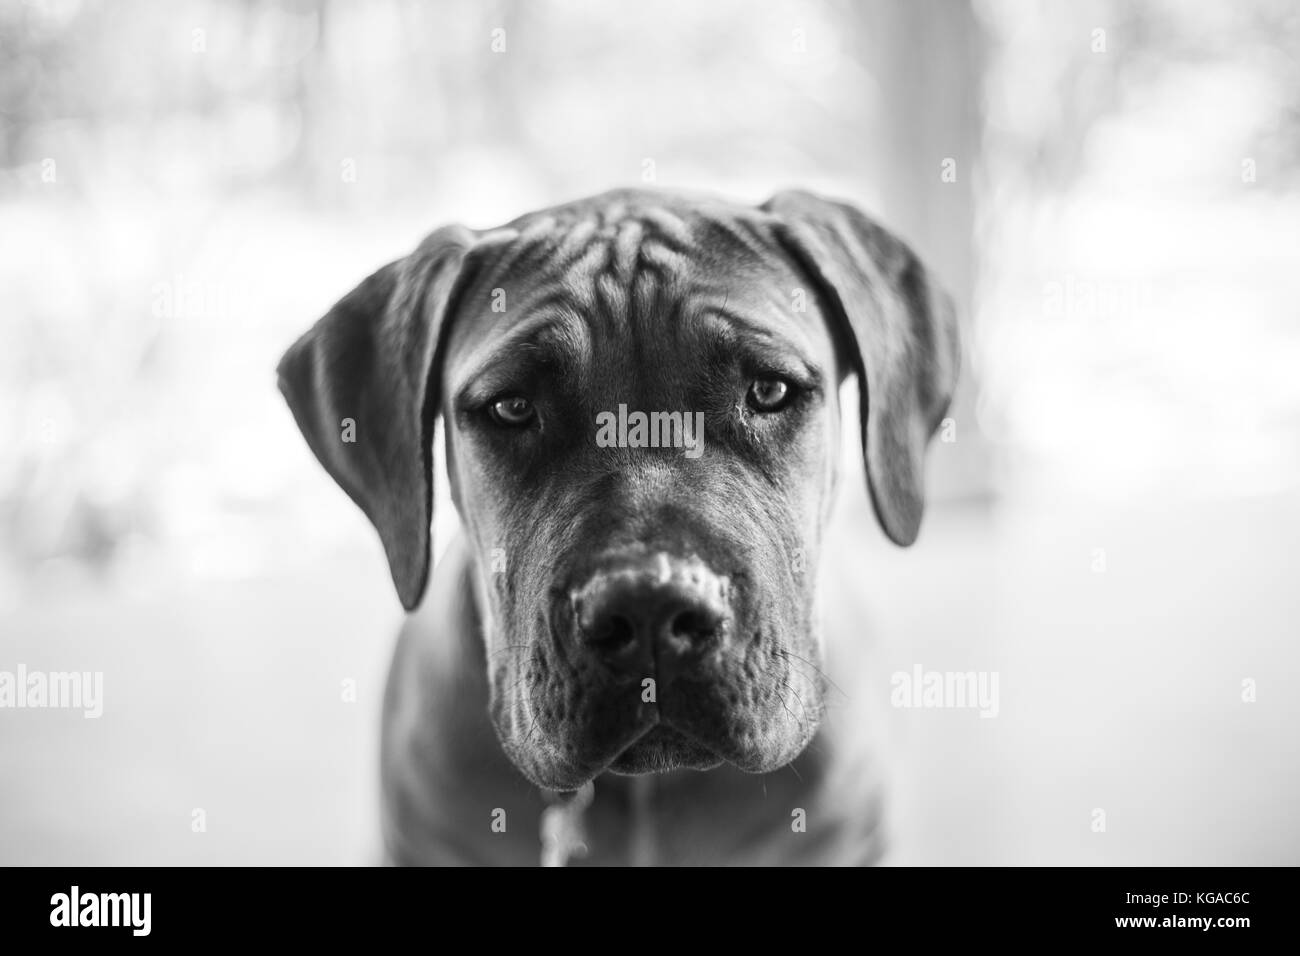 Black and white portrait of a boerboel puppy. Stock Photo